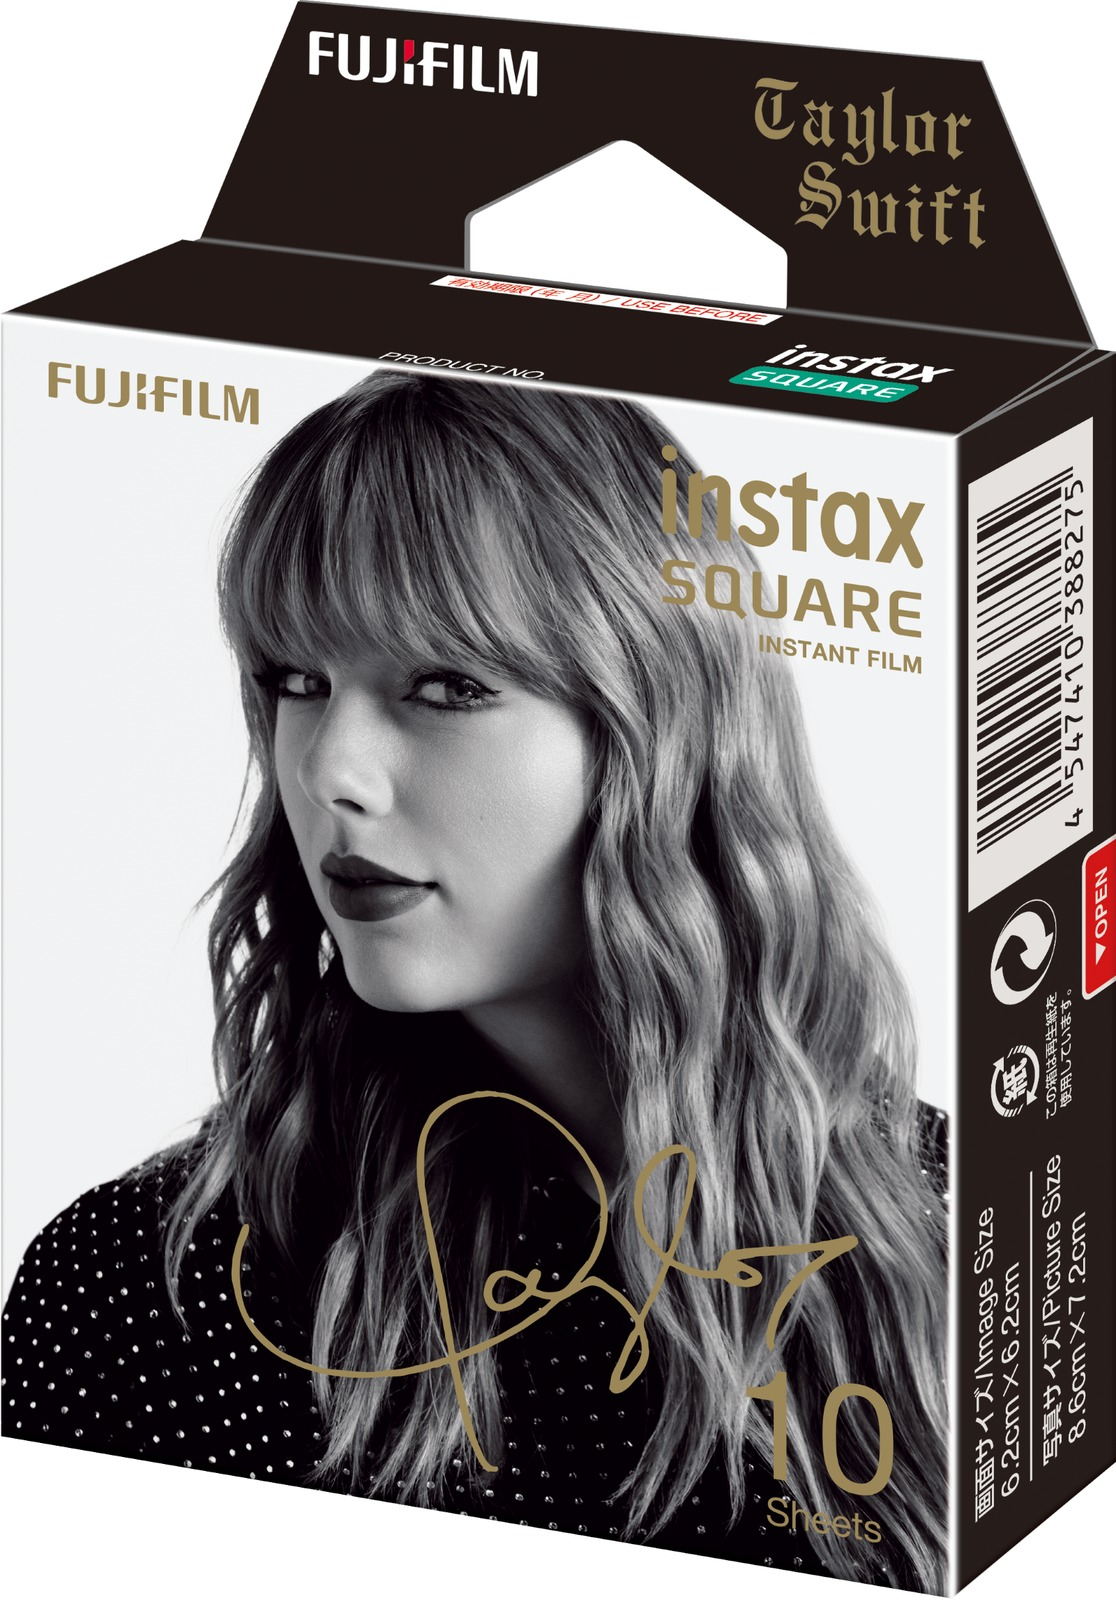 Fujifilm Instax Square Film Taylor Swift Edition - 10 Pack image